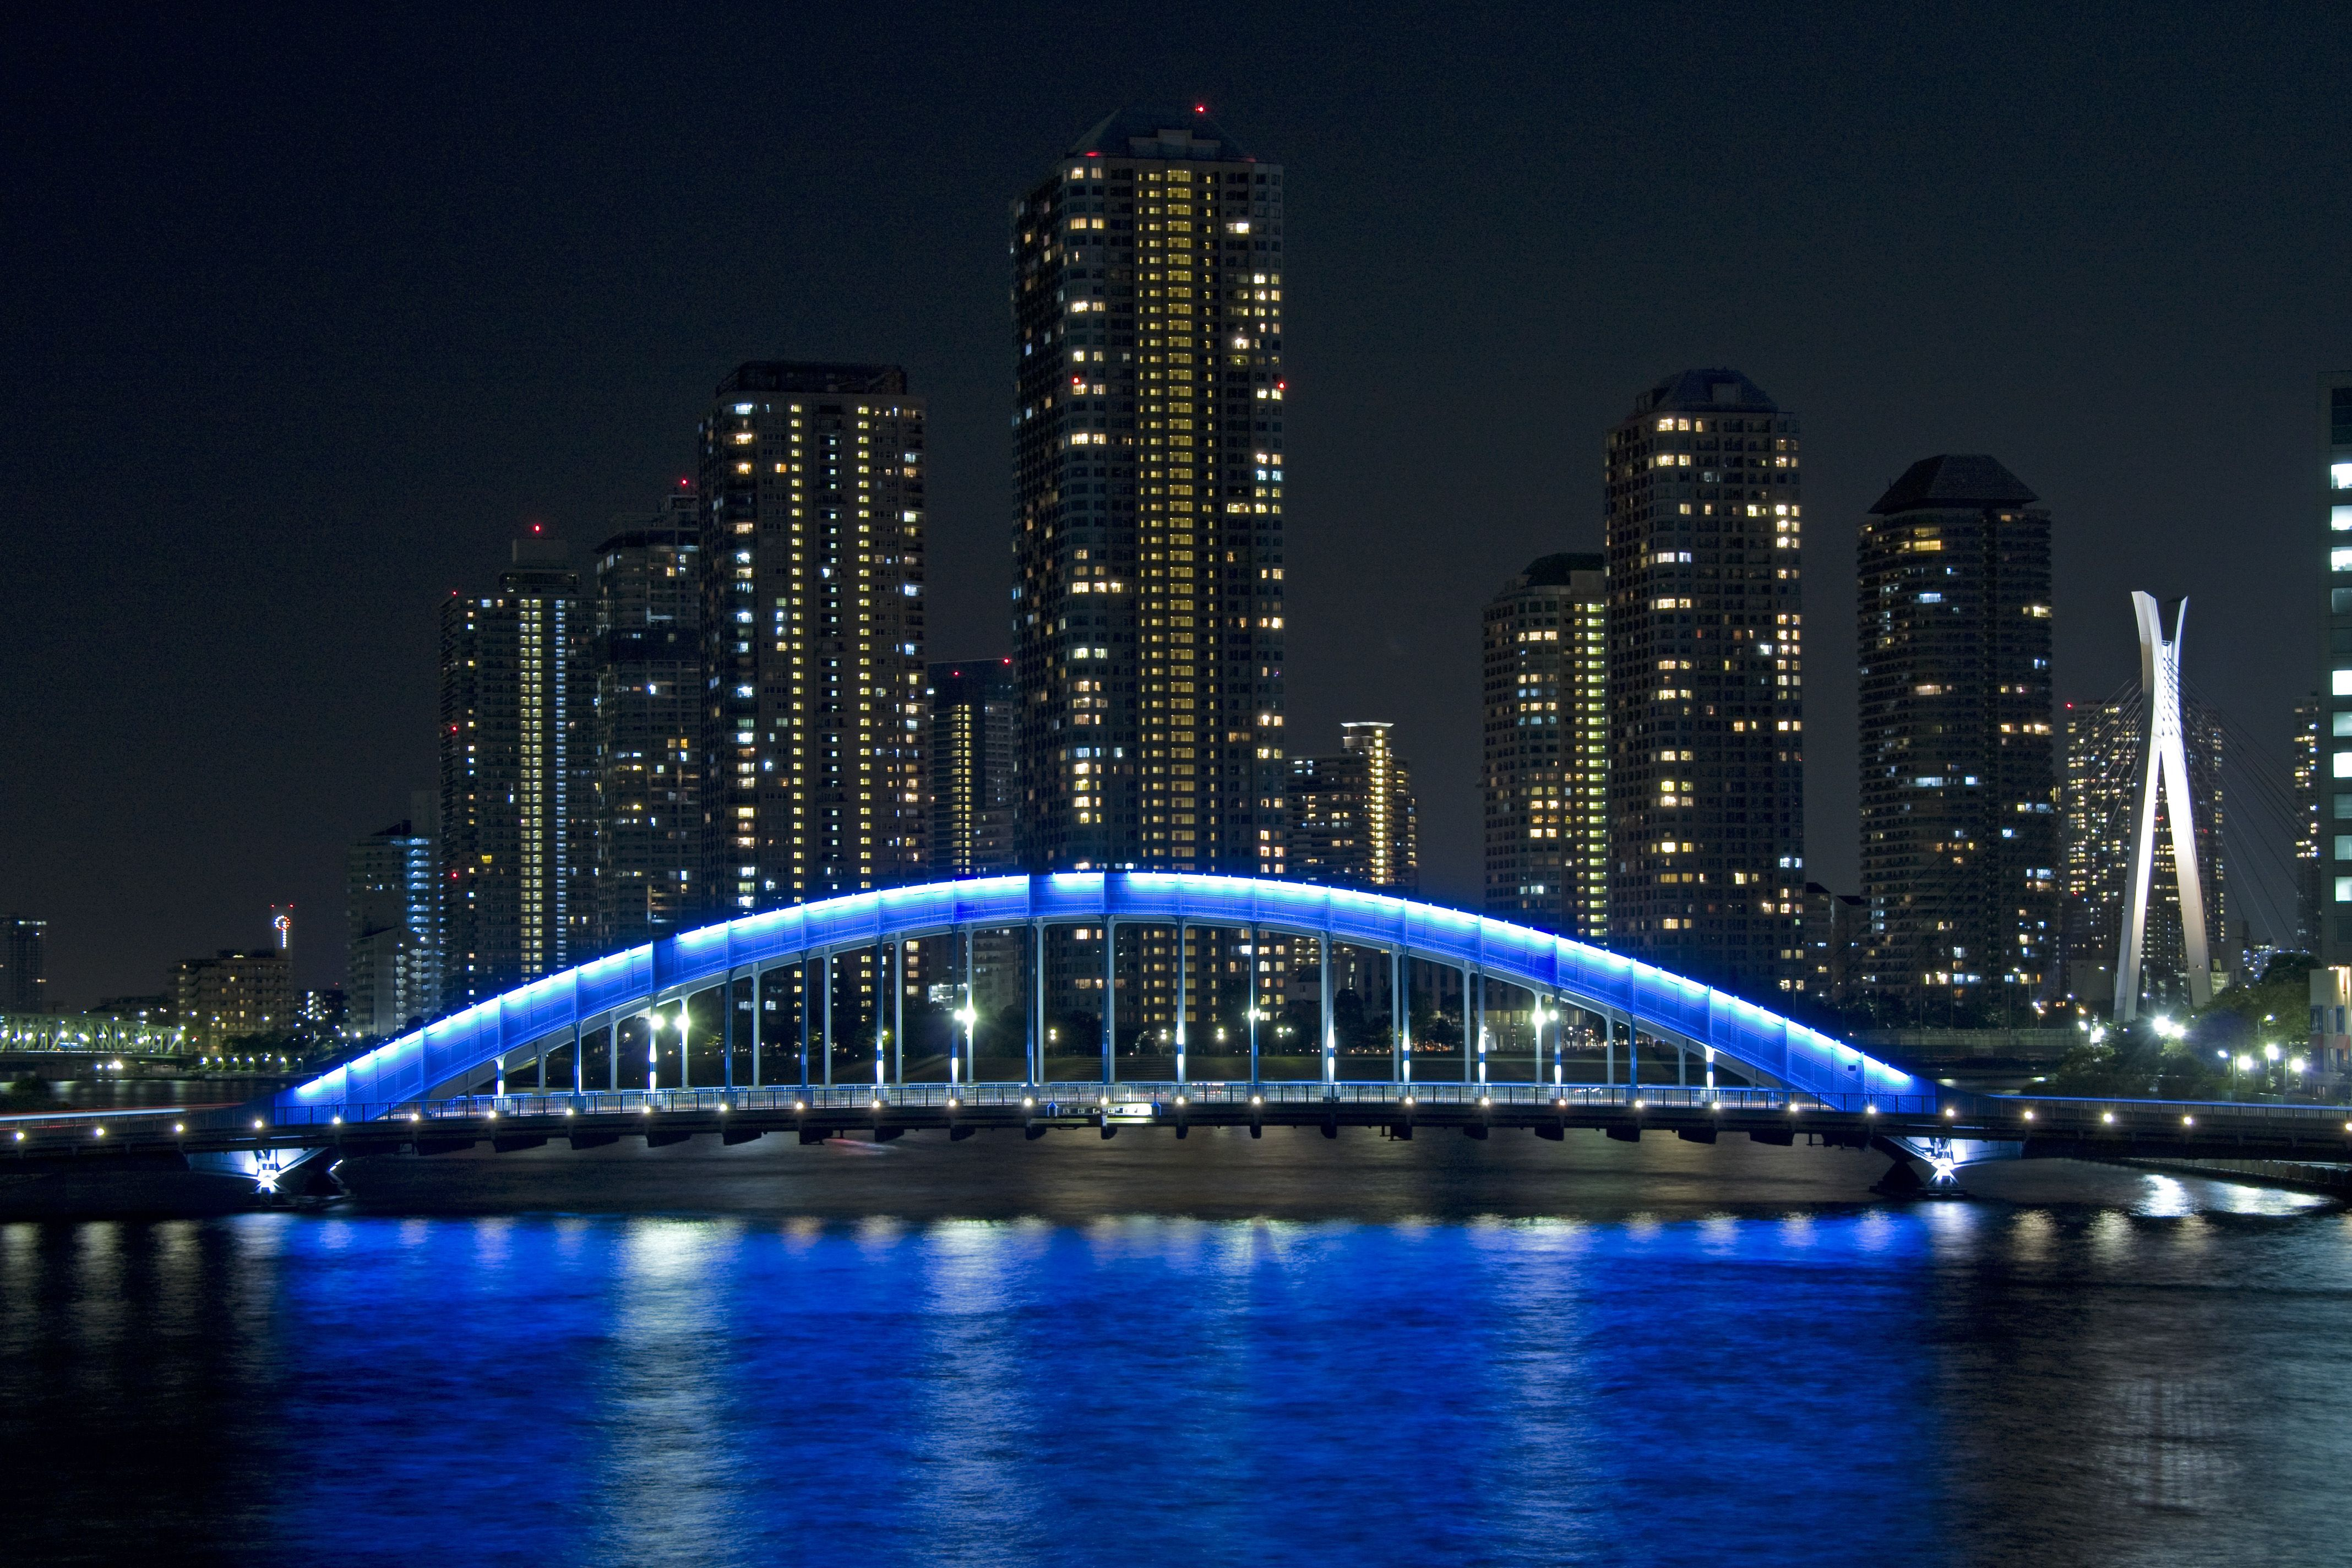 Eitai Bridge Night View HD Wallpaper Landscape WallpaperCity